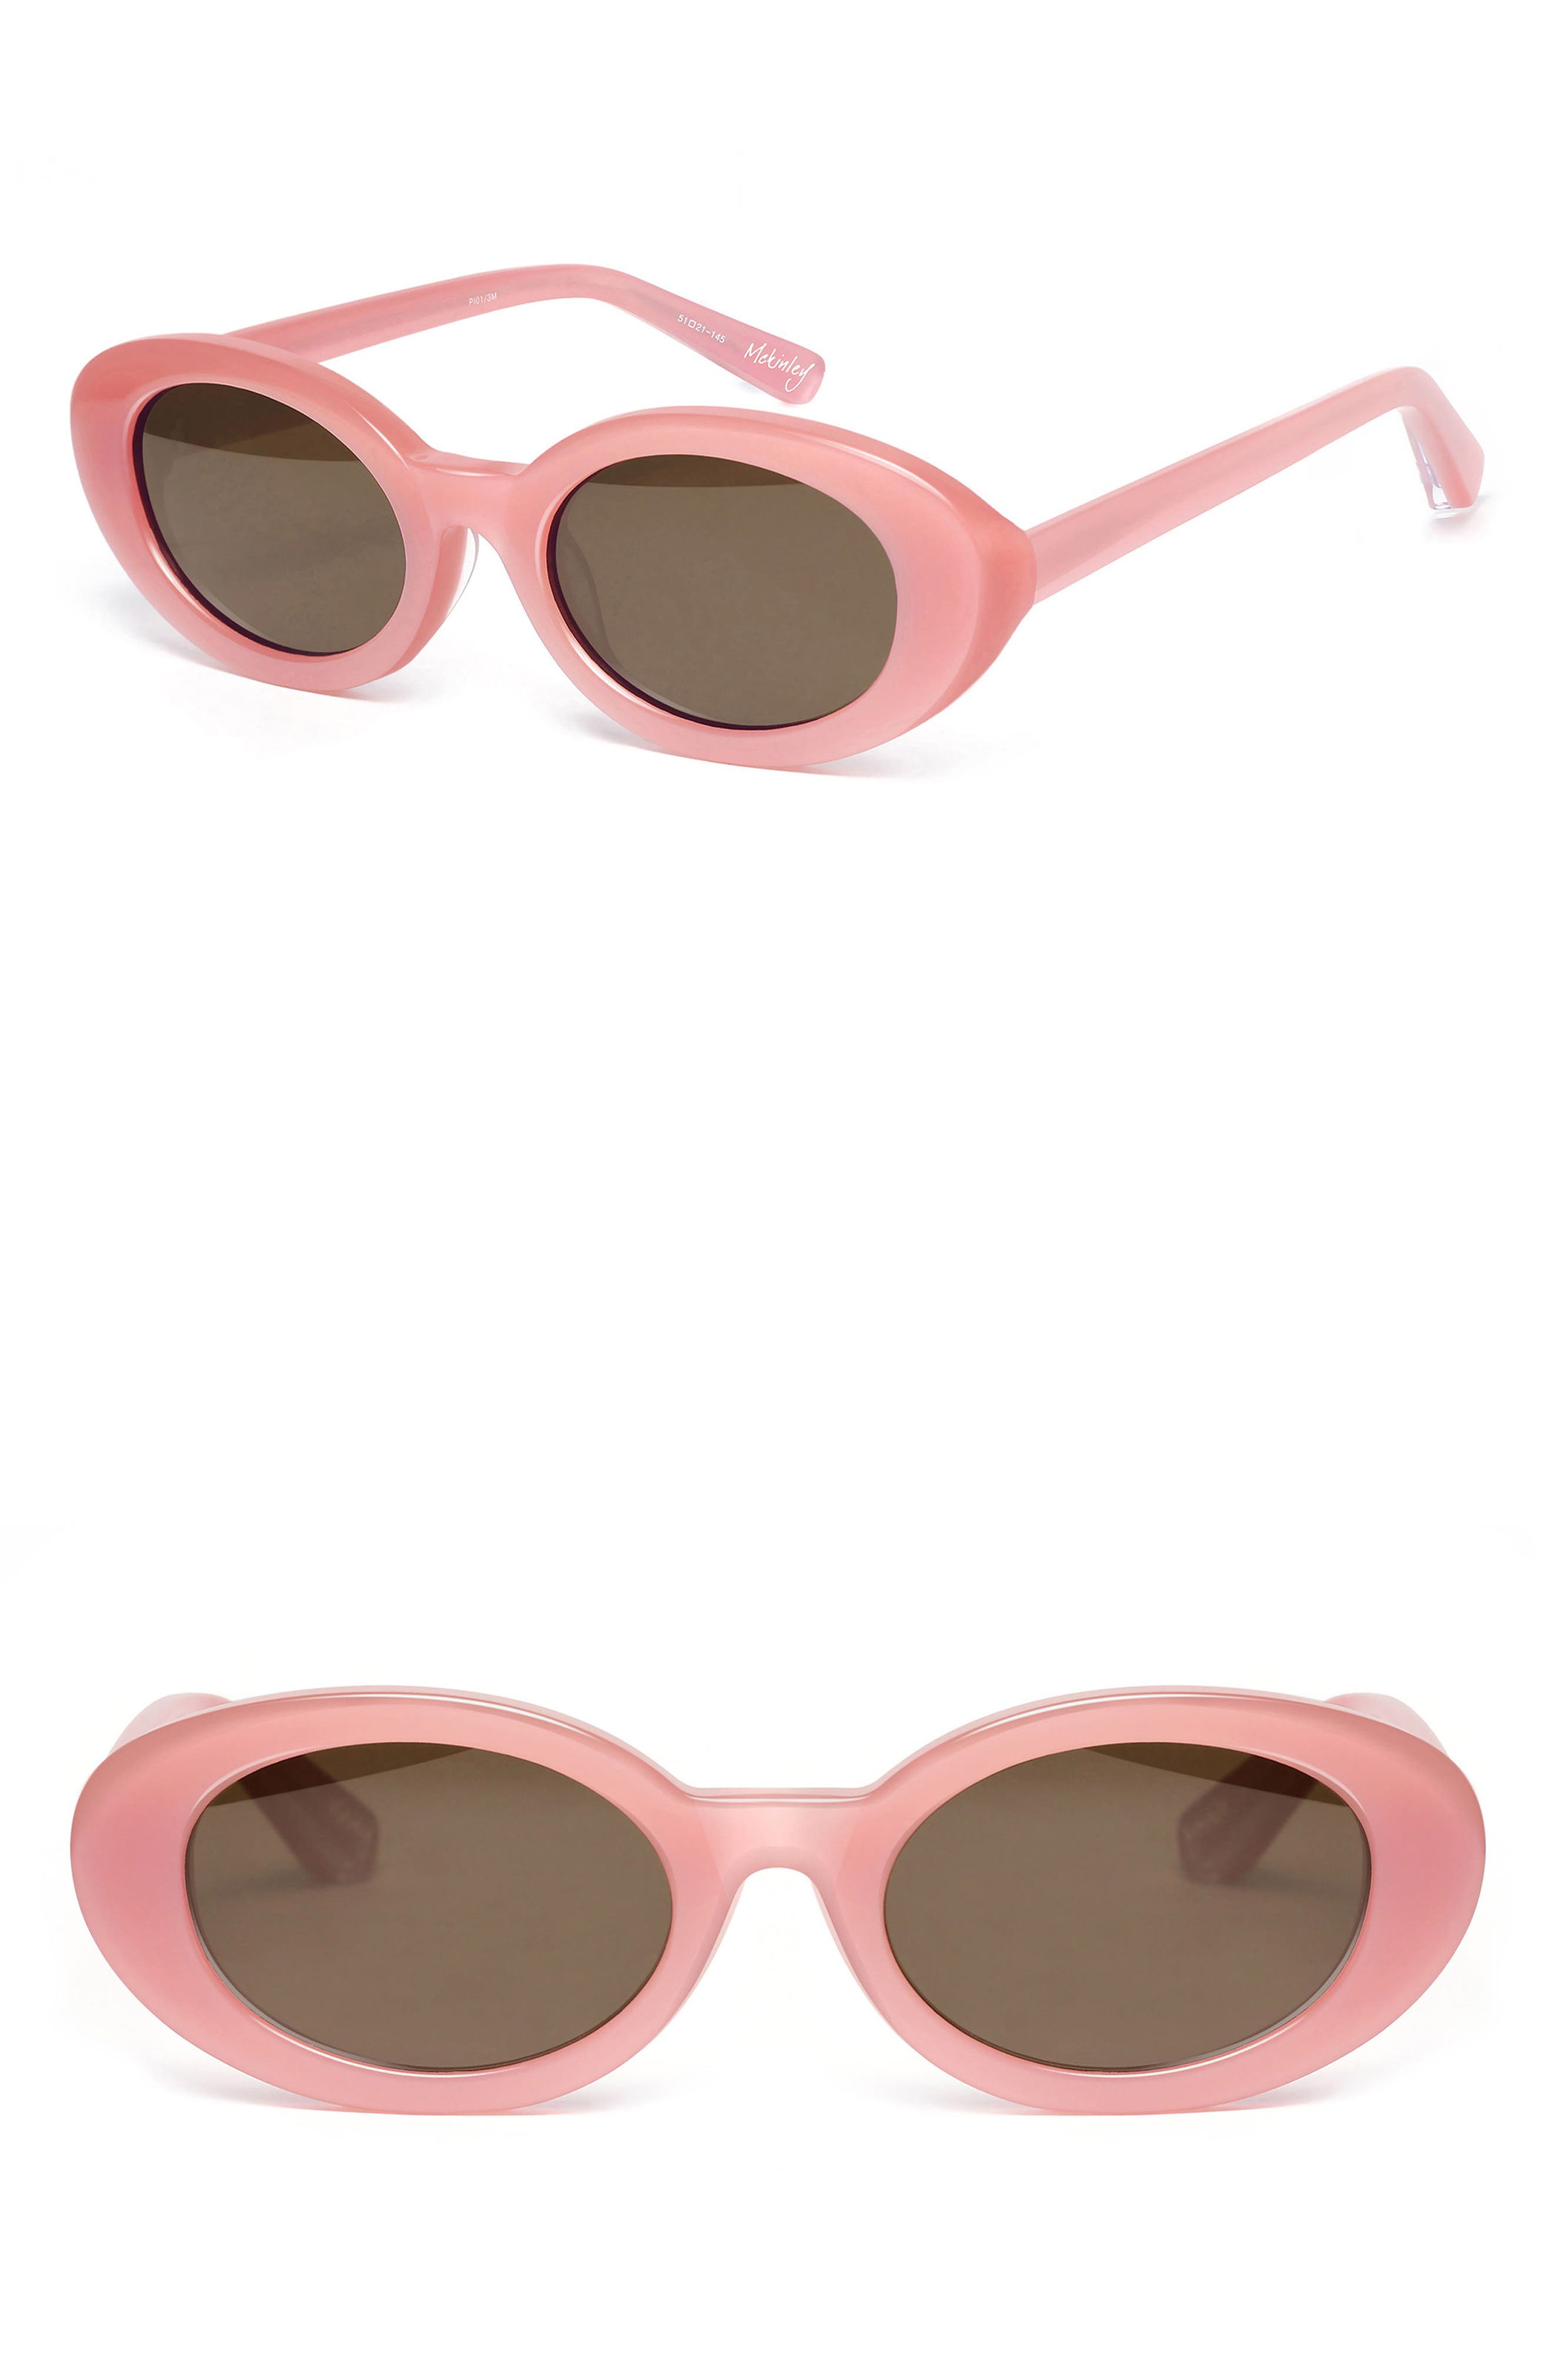 McKinely 51mm Oval Sunglasses,                             Main thumbnail 1, color,                             BUBBLEGUM PINK/ BROWN